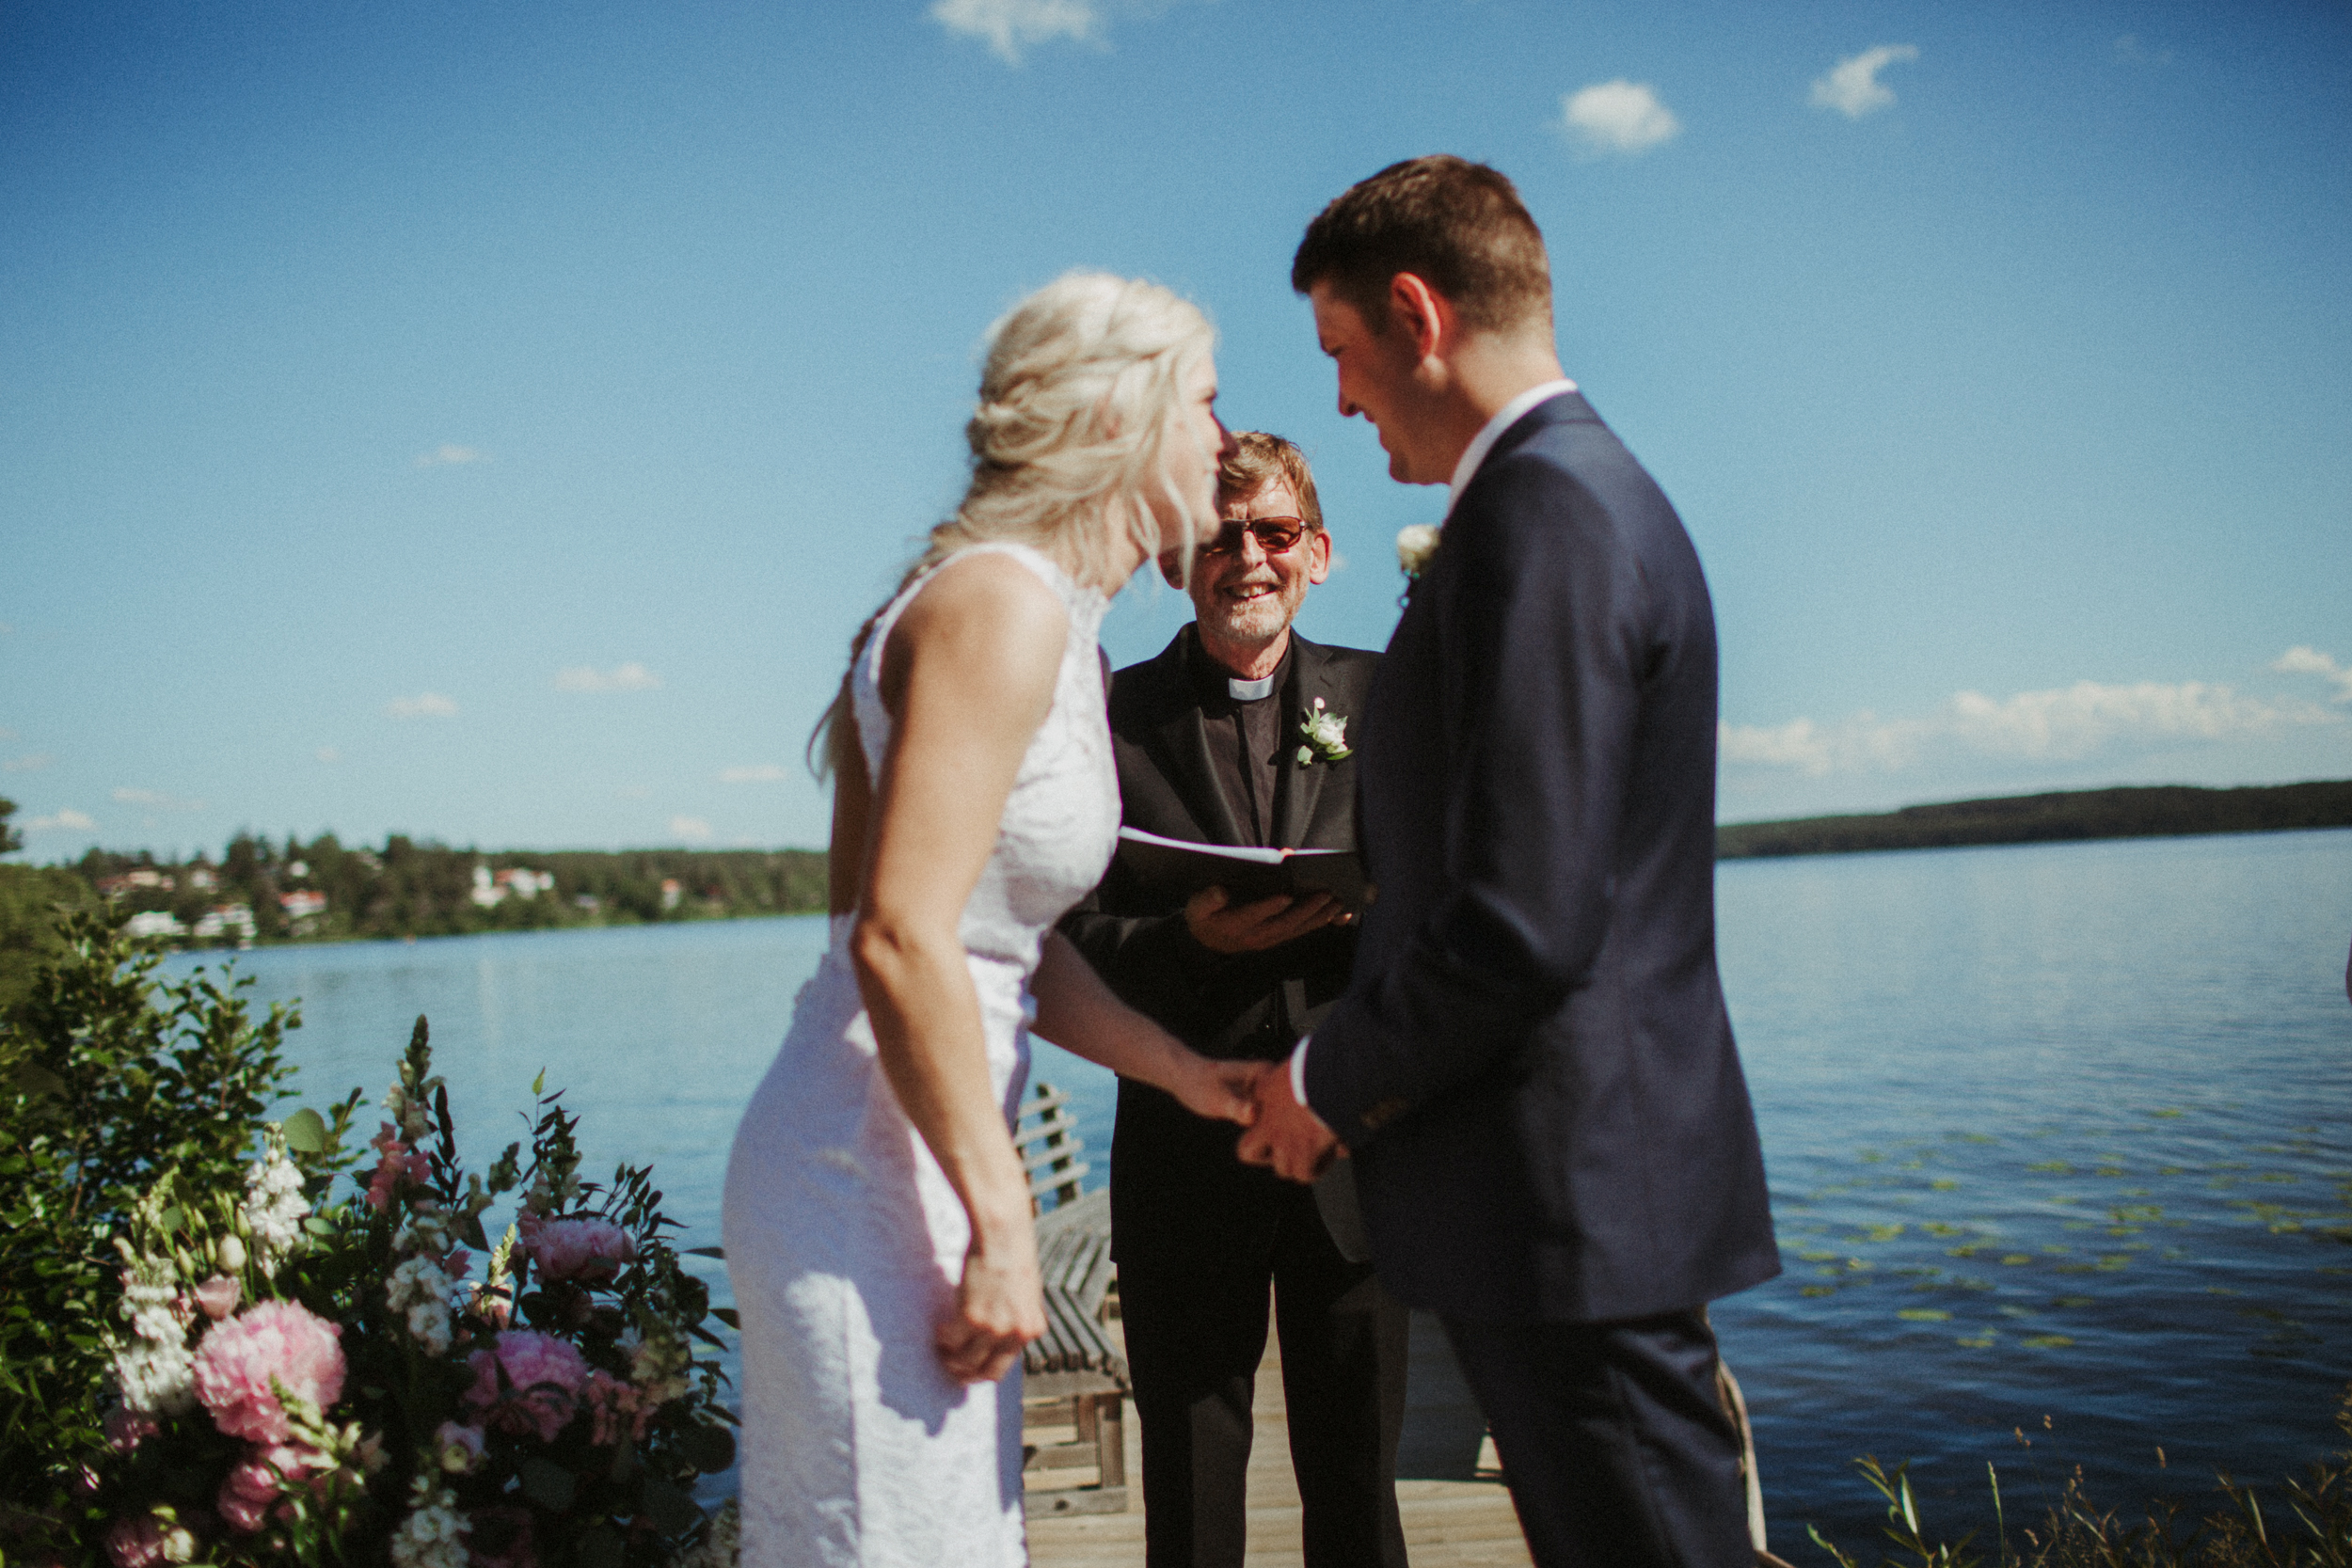 sigtuna-sweden-wedding_m_e-75.jpg